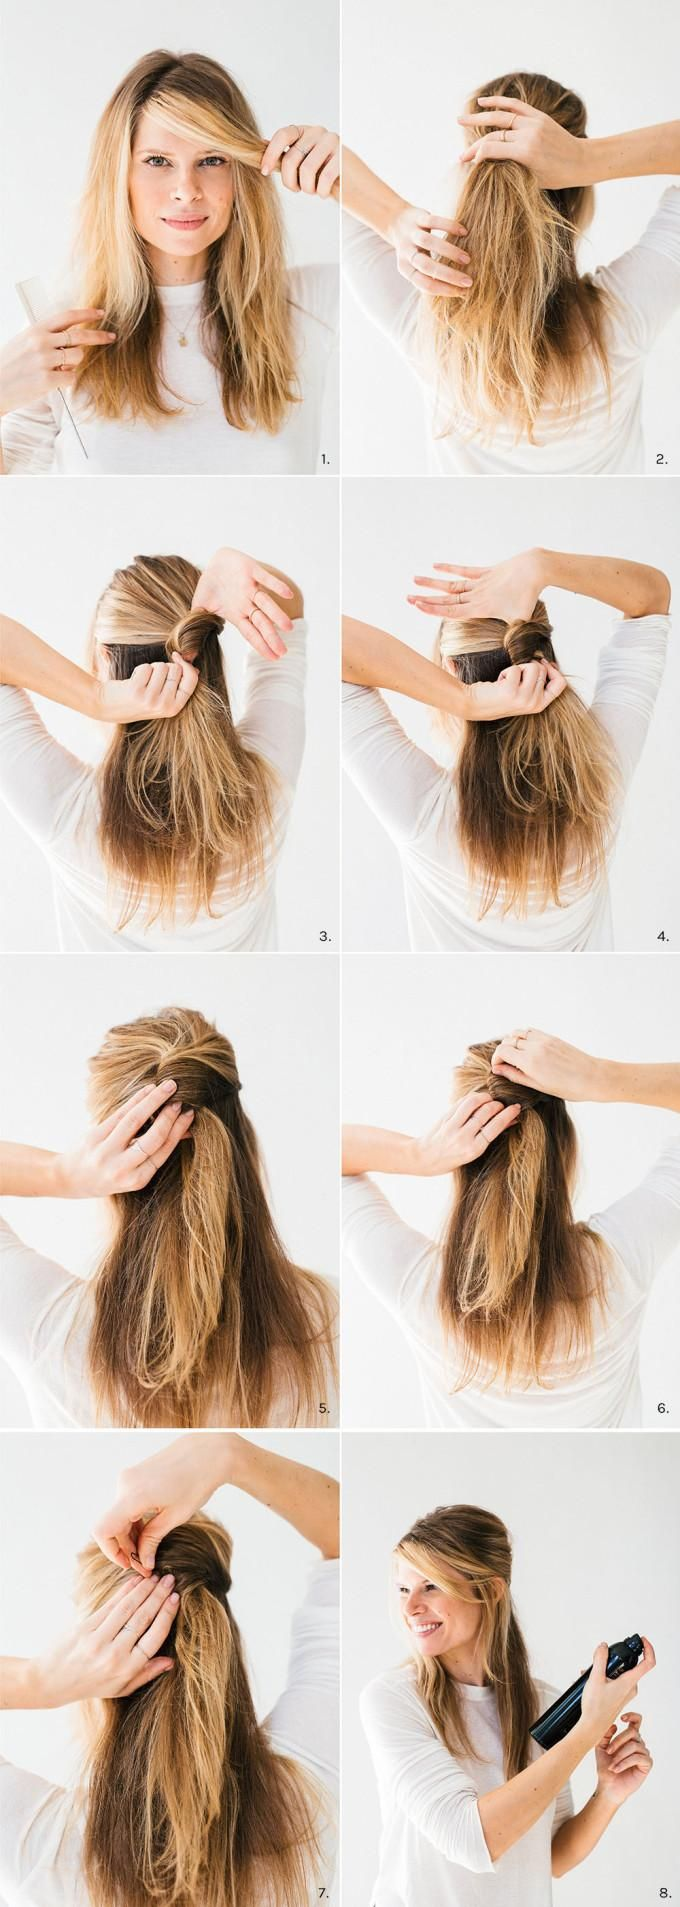 504 best hair styles images on pinterest | hairstyles, make up and